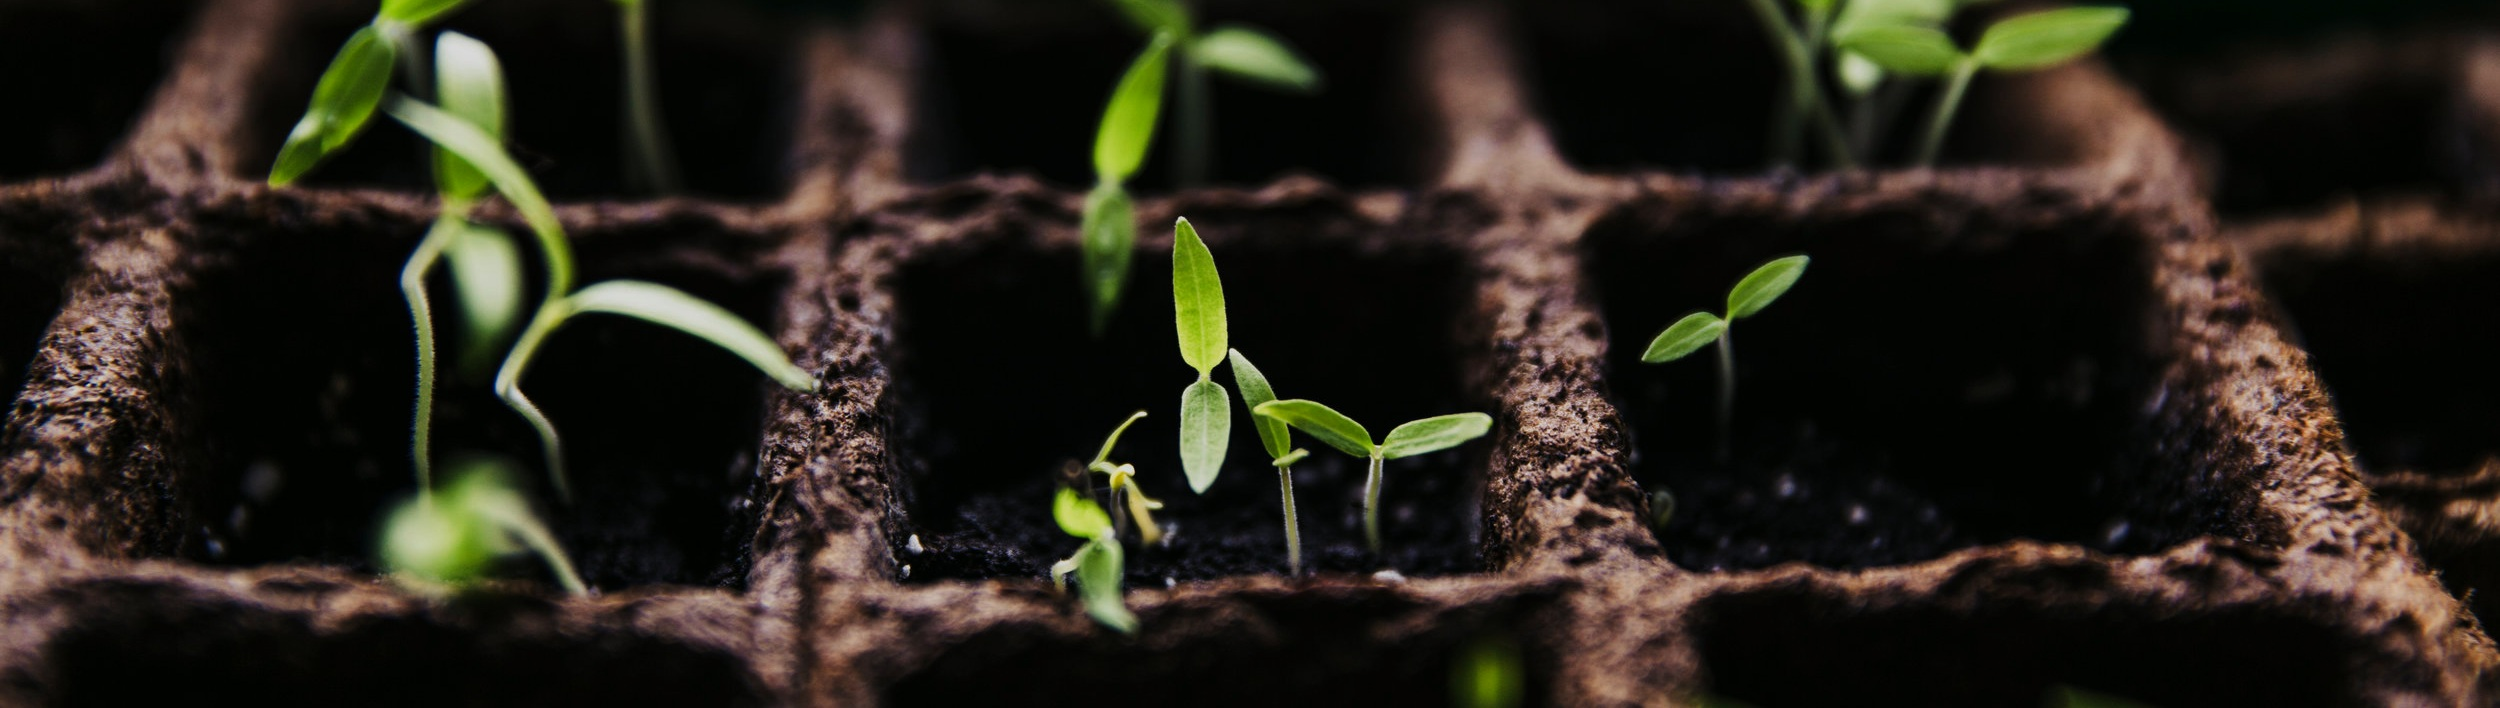 Growing at Grace - Here are some simple steps that are proven to lead people down a path of spiritual growth.